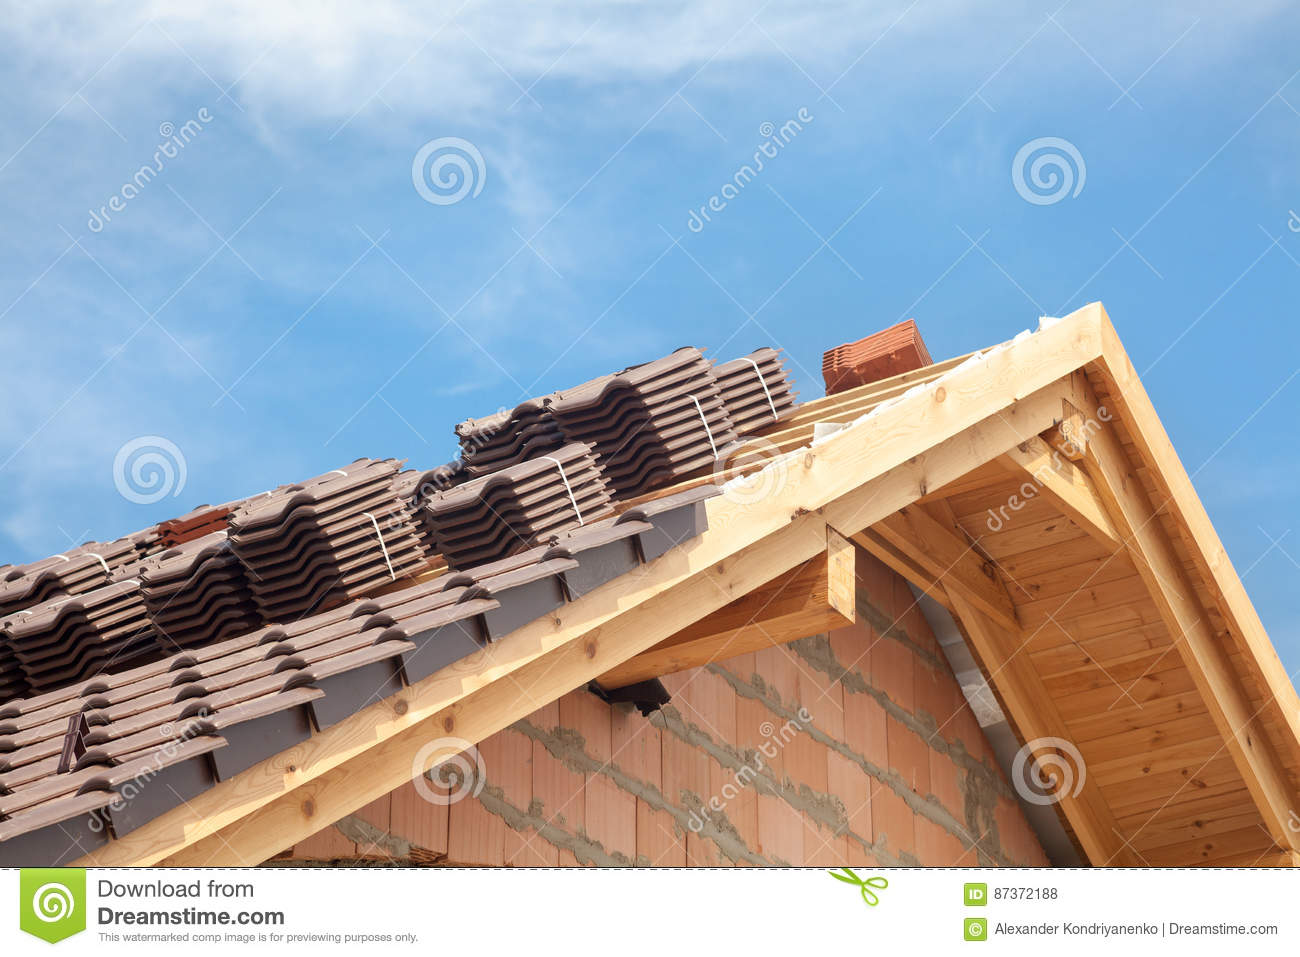 House under construction. Roofing tiles preparing to Install.